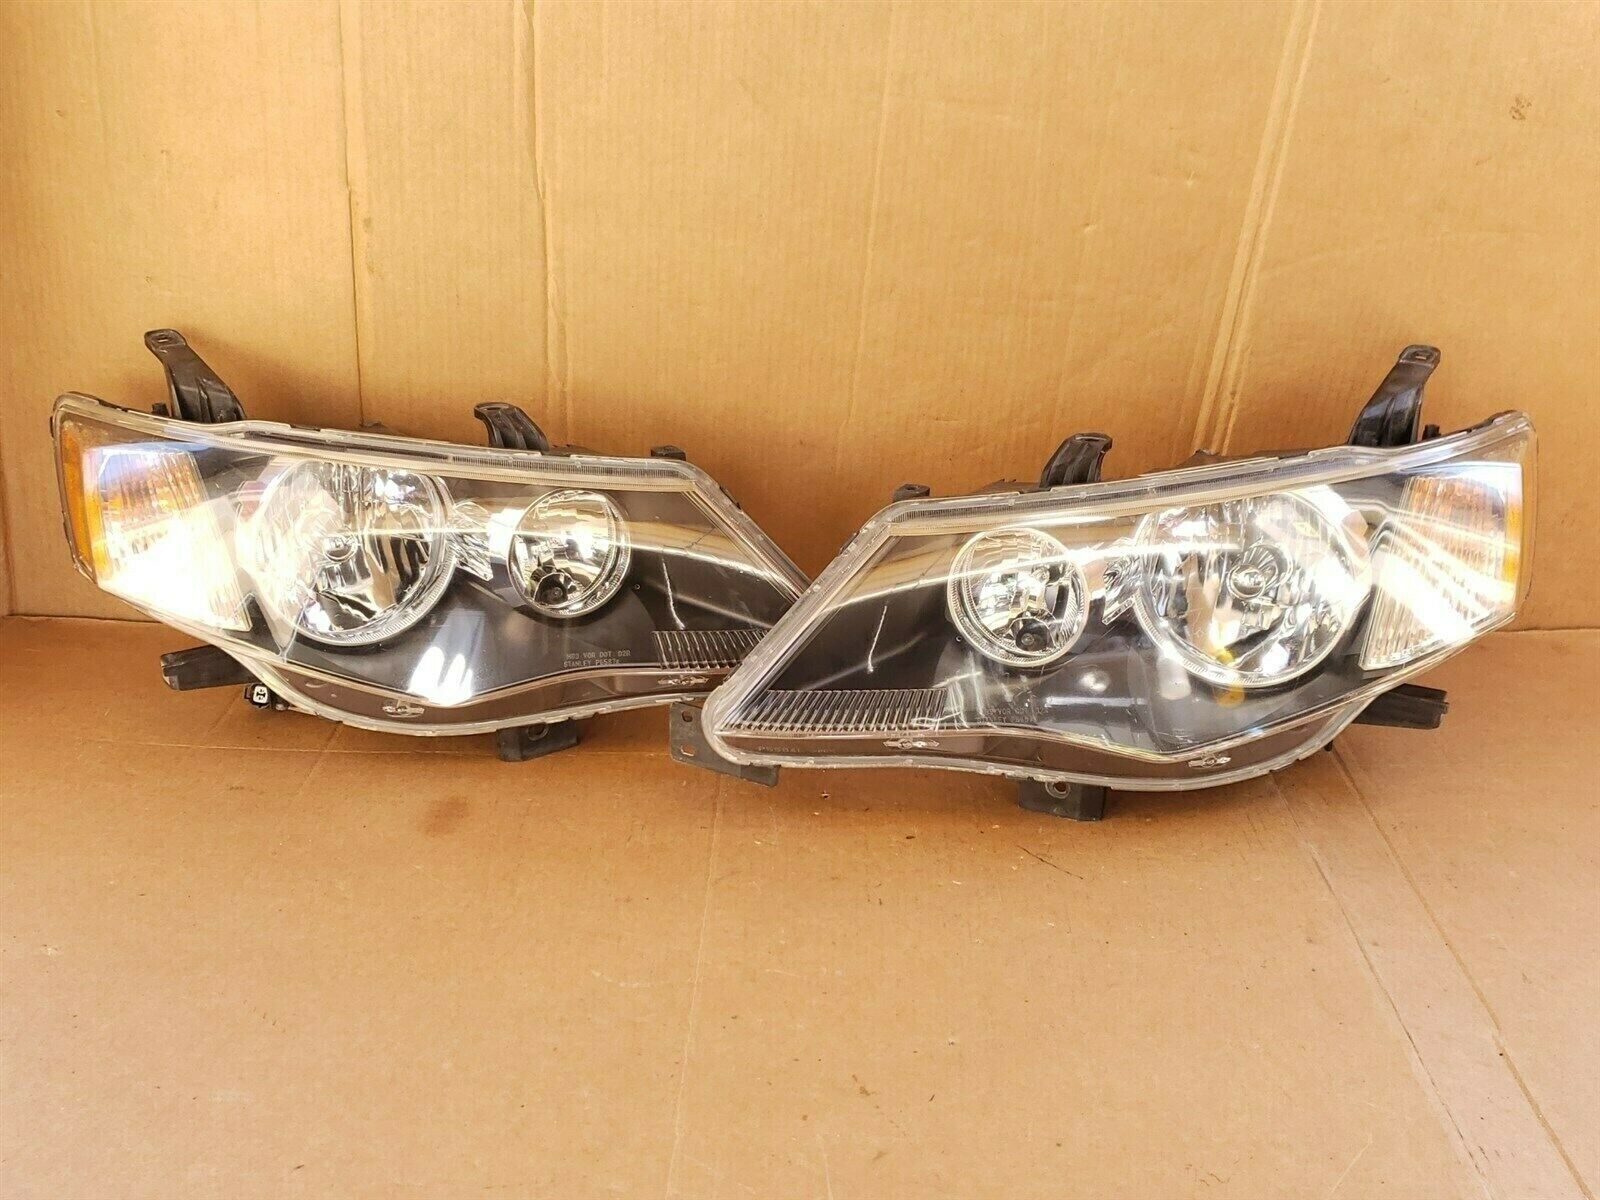 Primary image for 07-09 Mitsubishi Outlander HID Xenon Headlights Set L&R - POLISHED